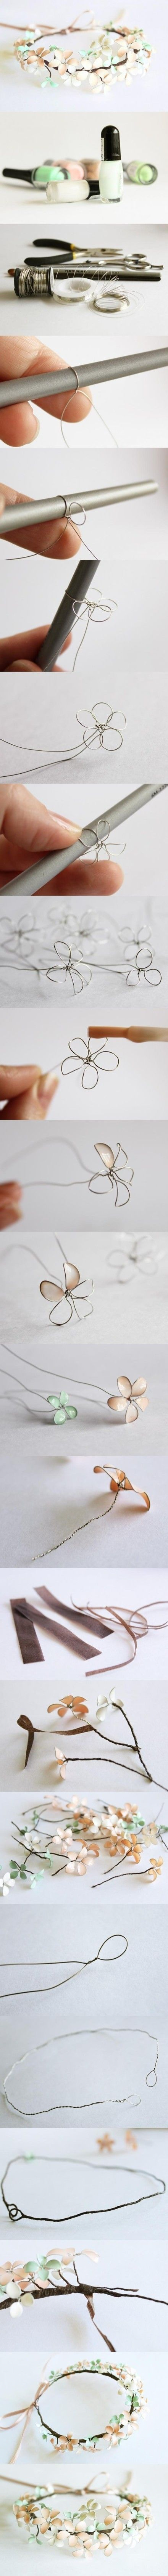 Amazing! Make beautiful flowers from wire  nail polish!!